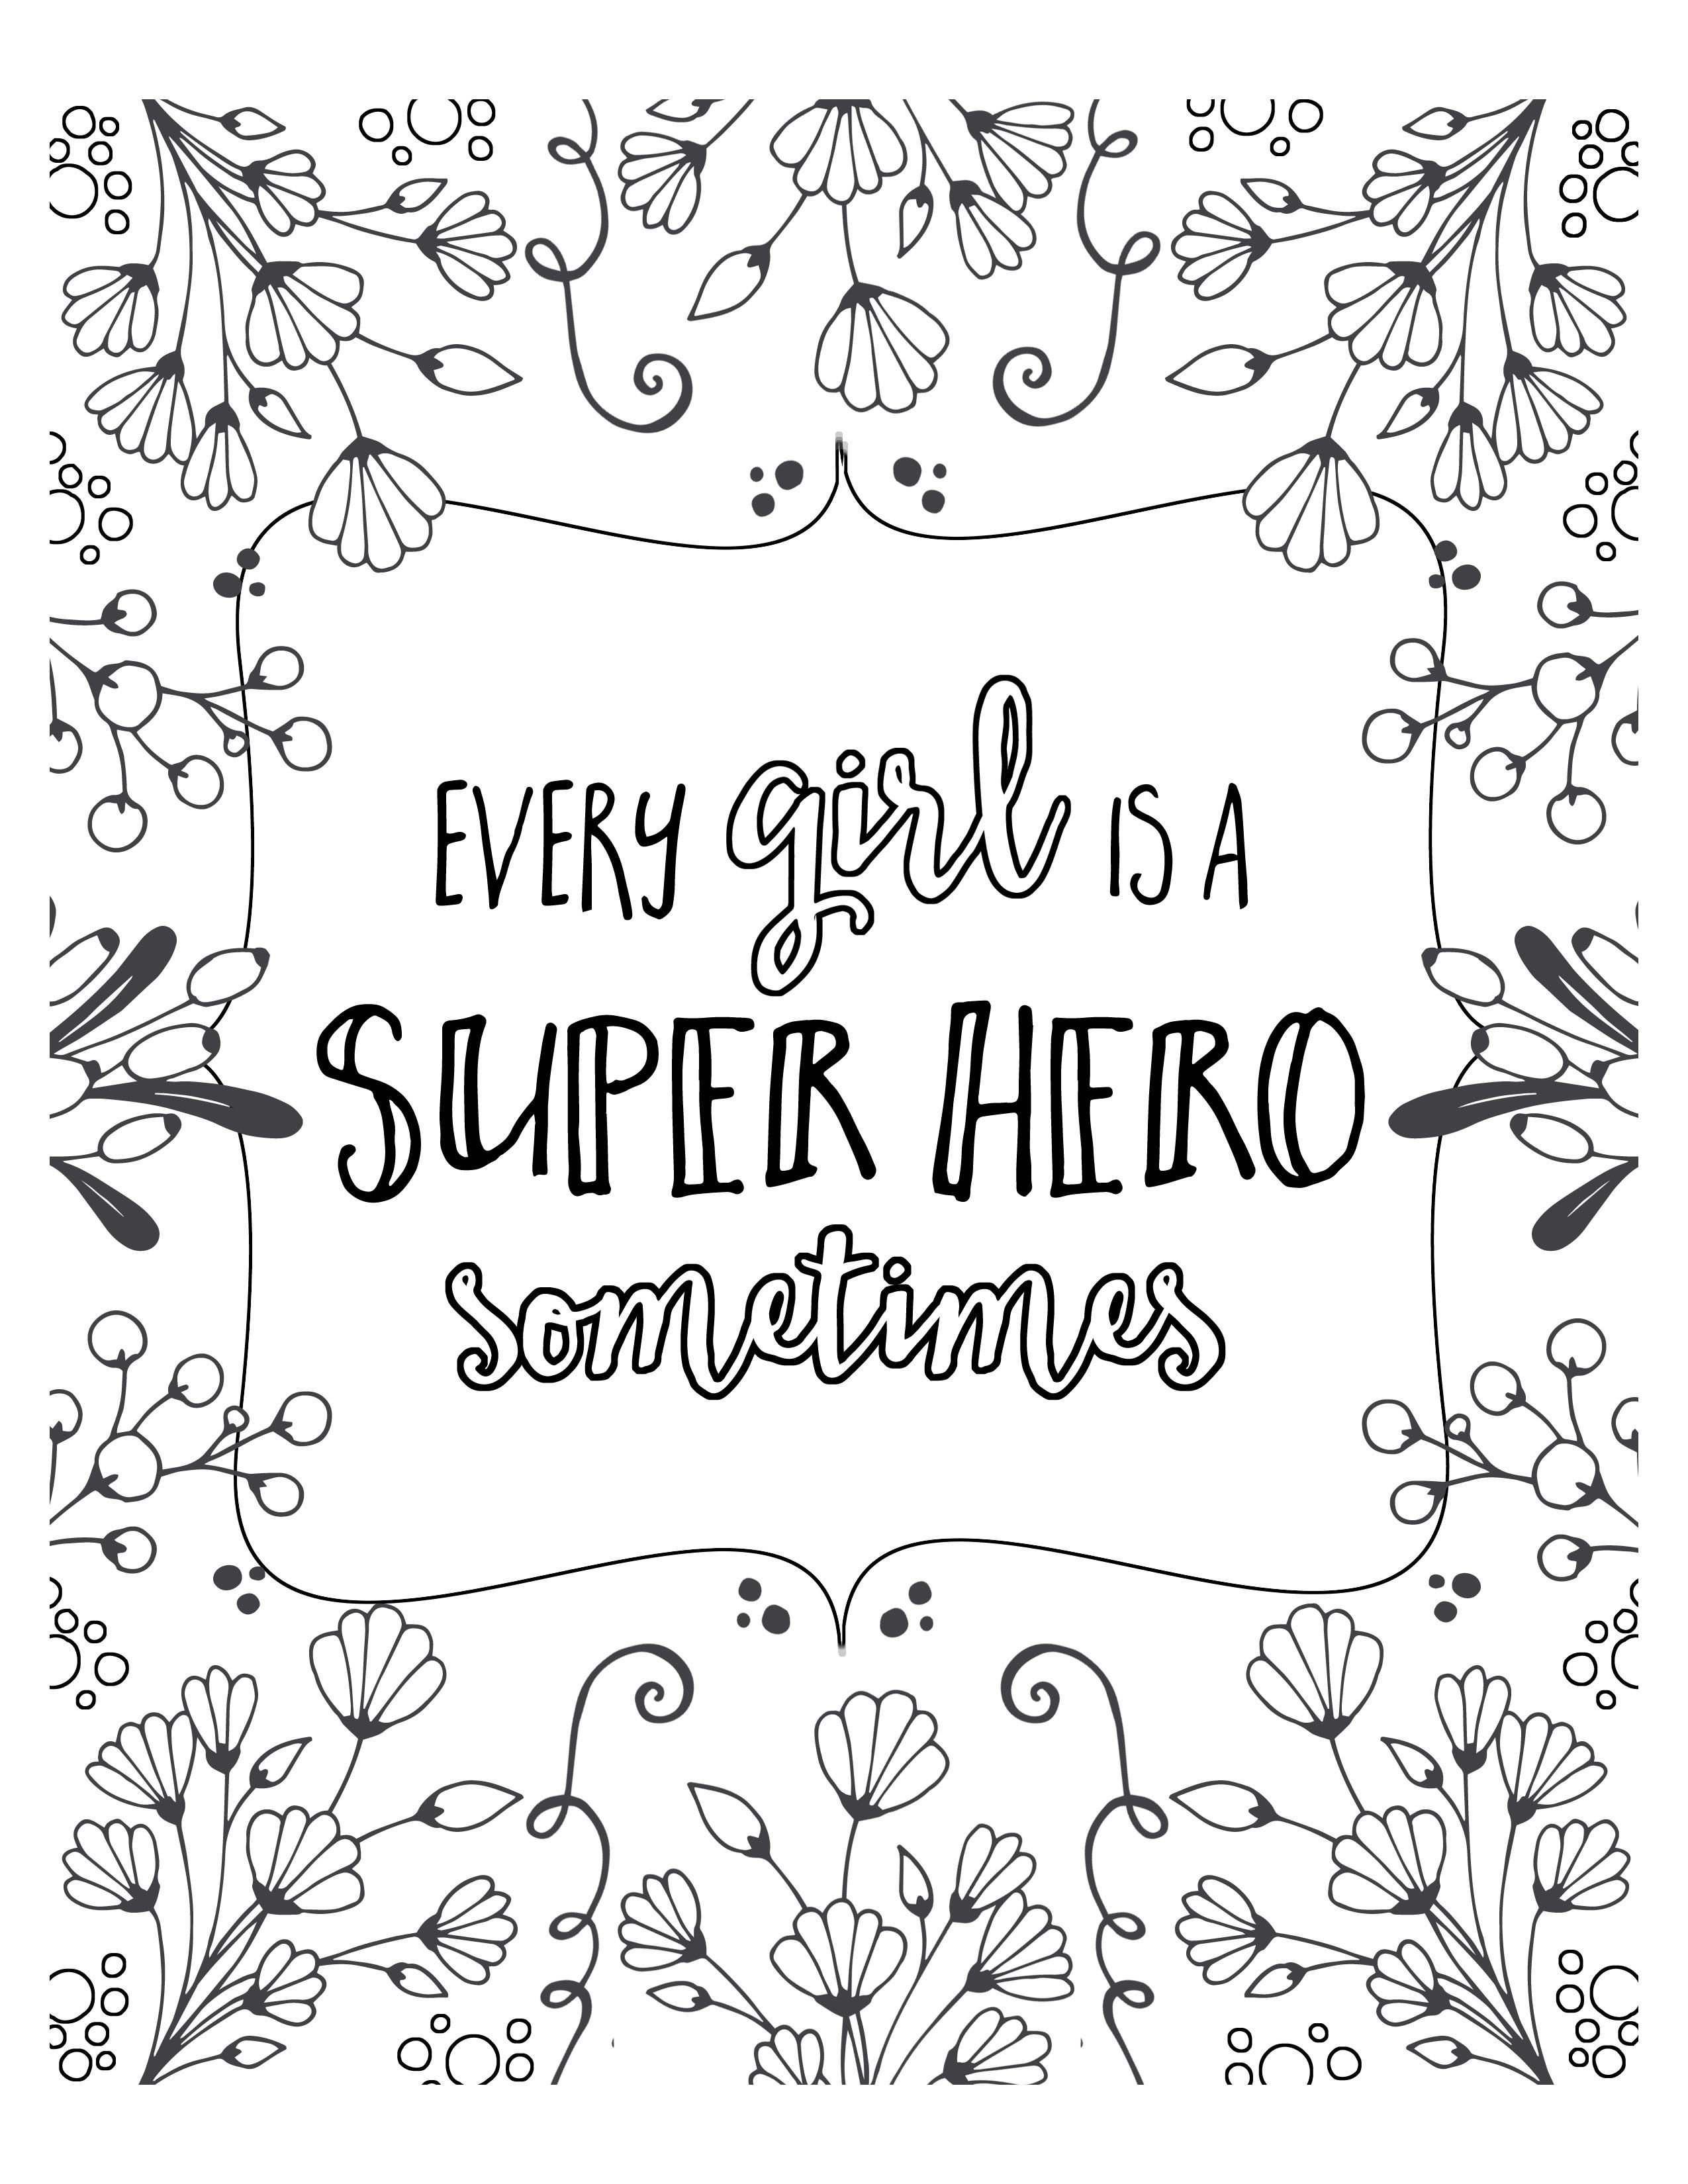 Free Super Hero Coloring Pages | Lil' Luna | Coloring Pages